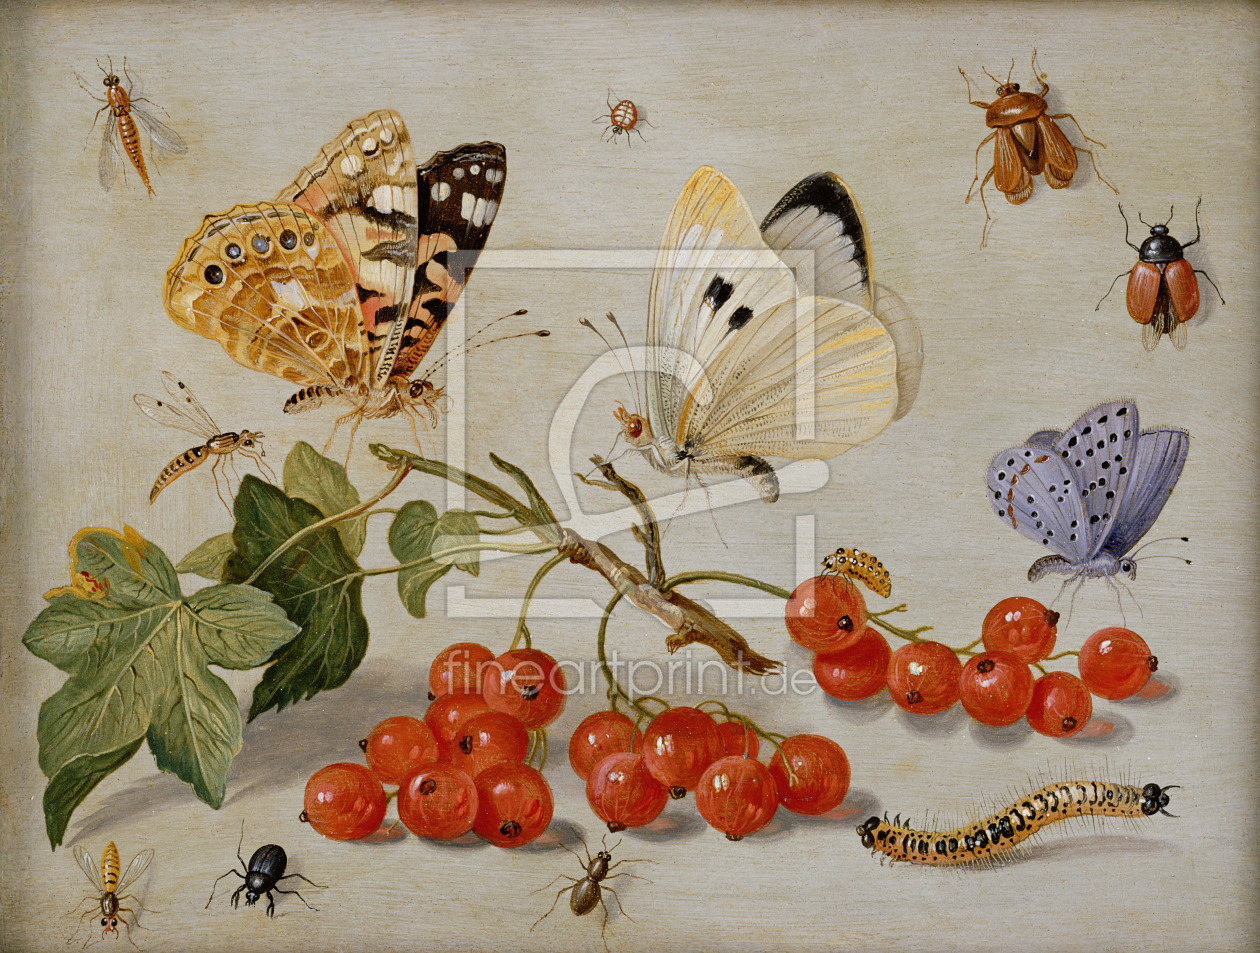 Bild-Nr.: 31002264 A still life with sprig of Redcurrants, butterflies, beetles, caterpillar and in erstellt von Kessel, Jan van, the Elder